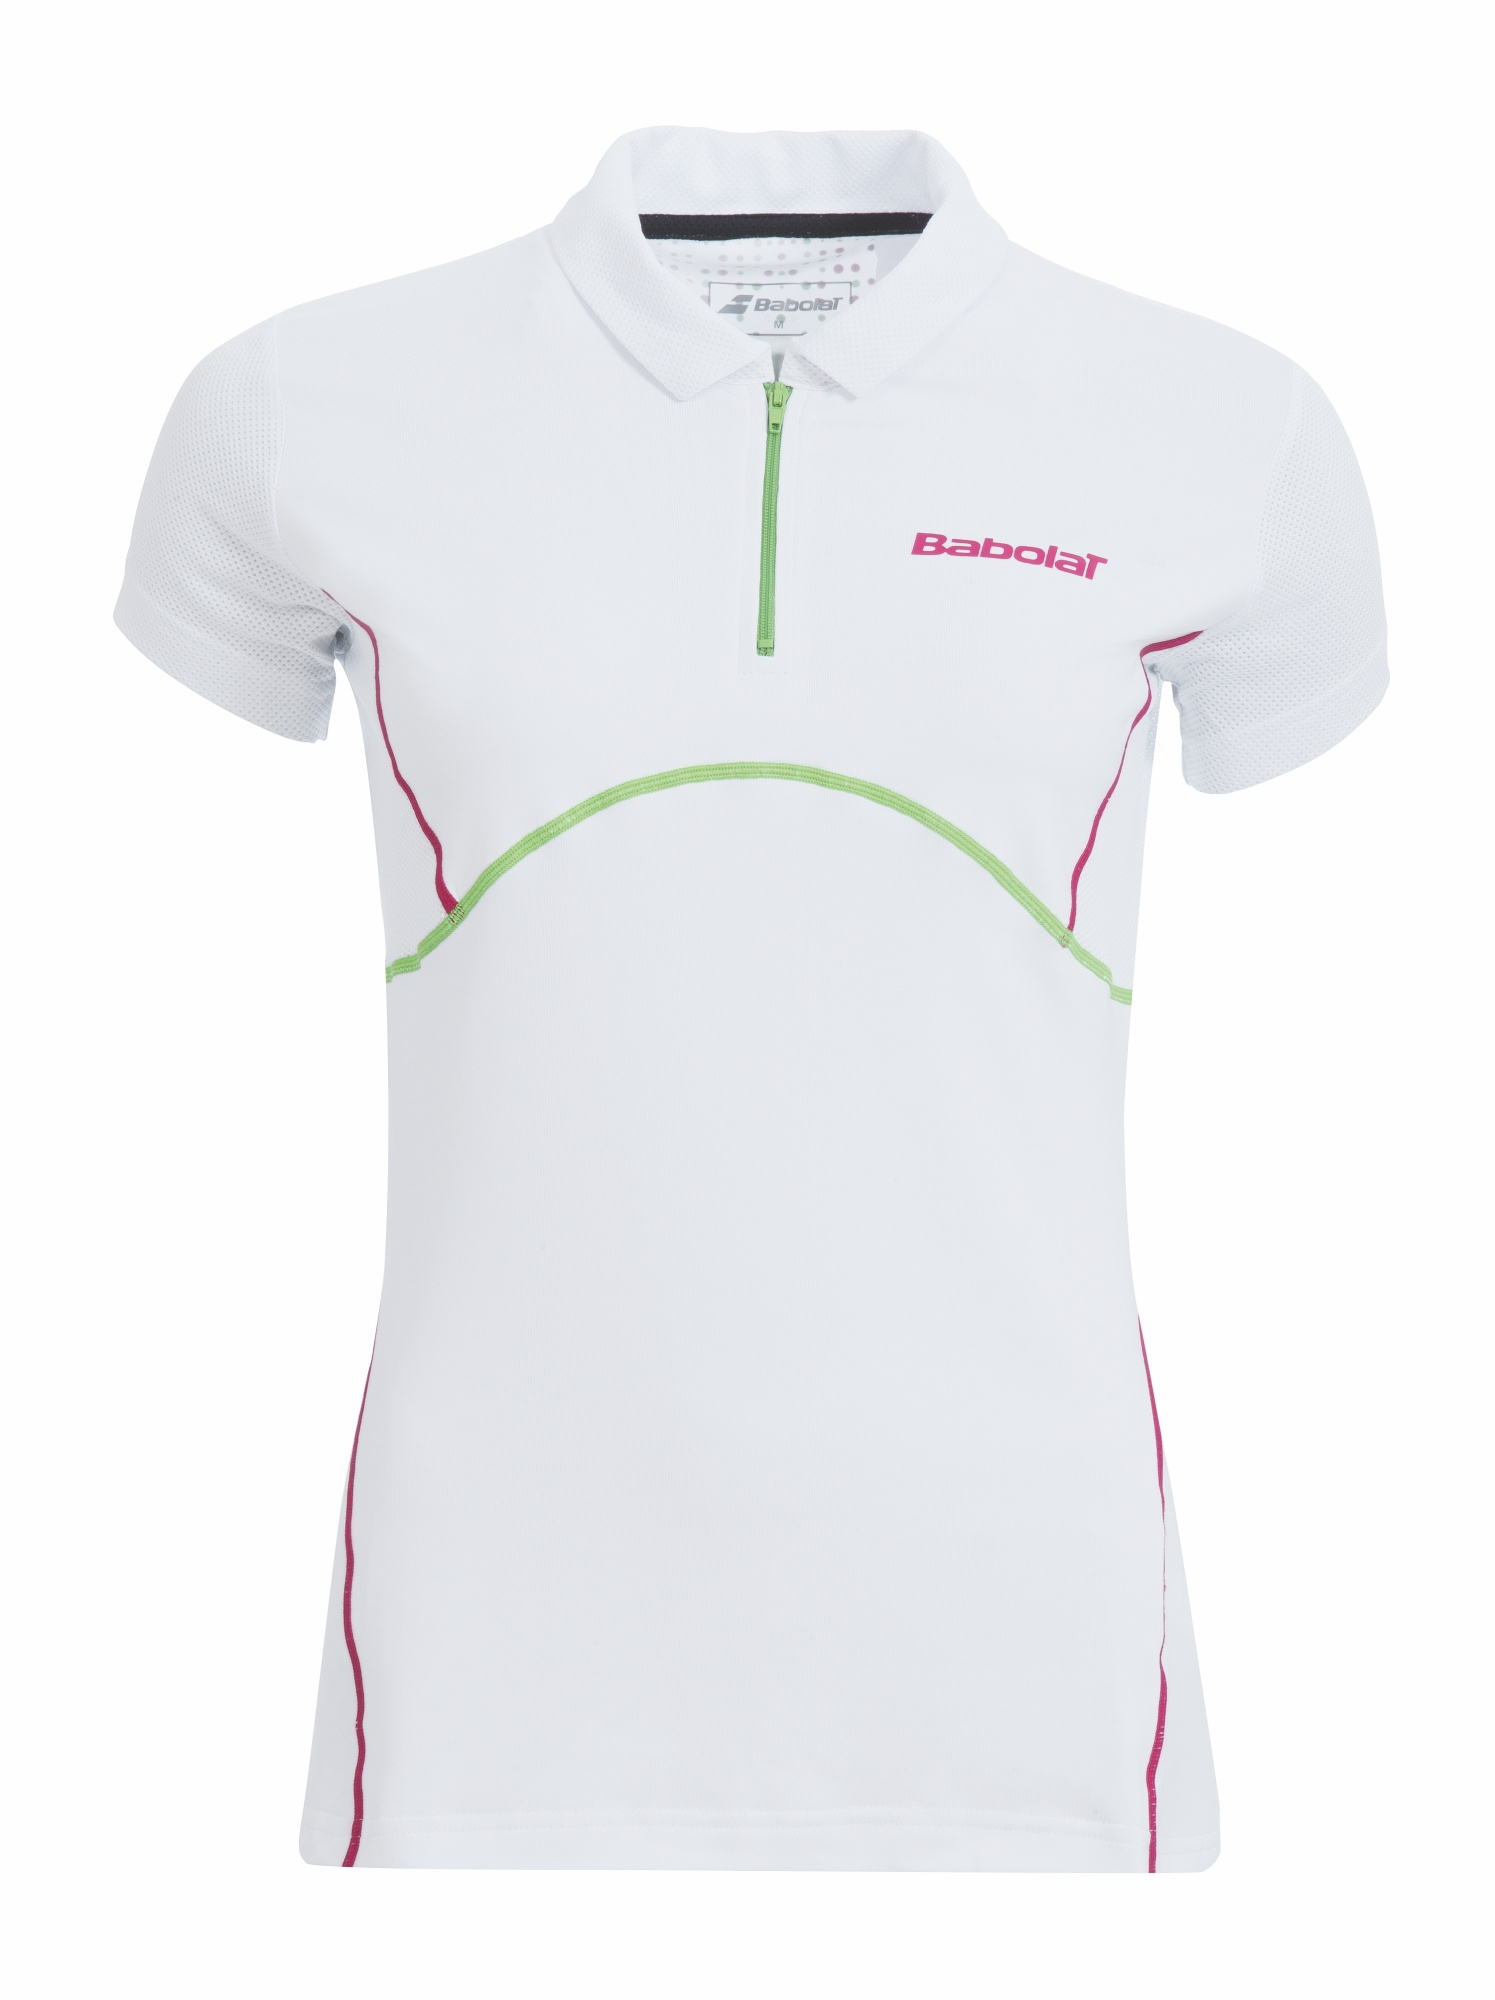 Babolat Polo Women Match Performance White 2015 M